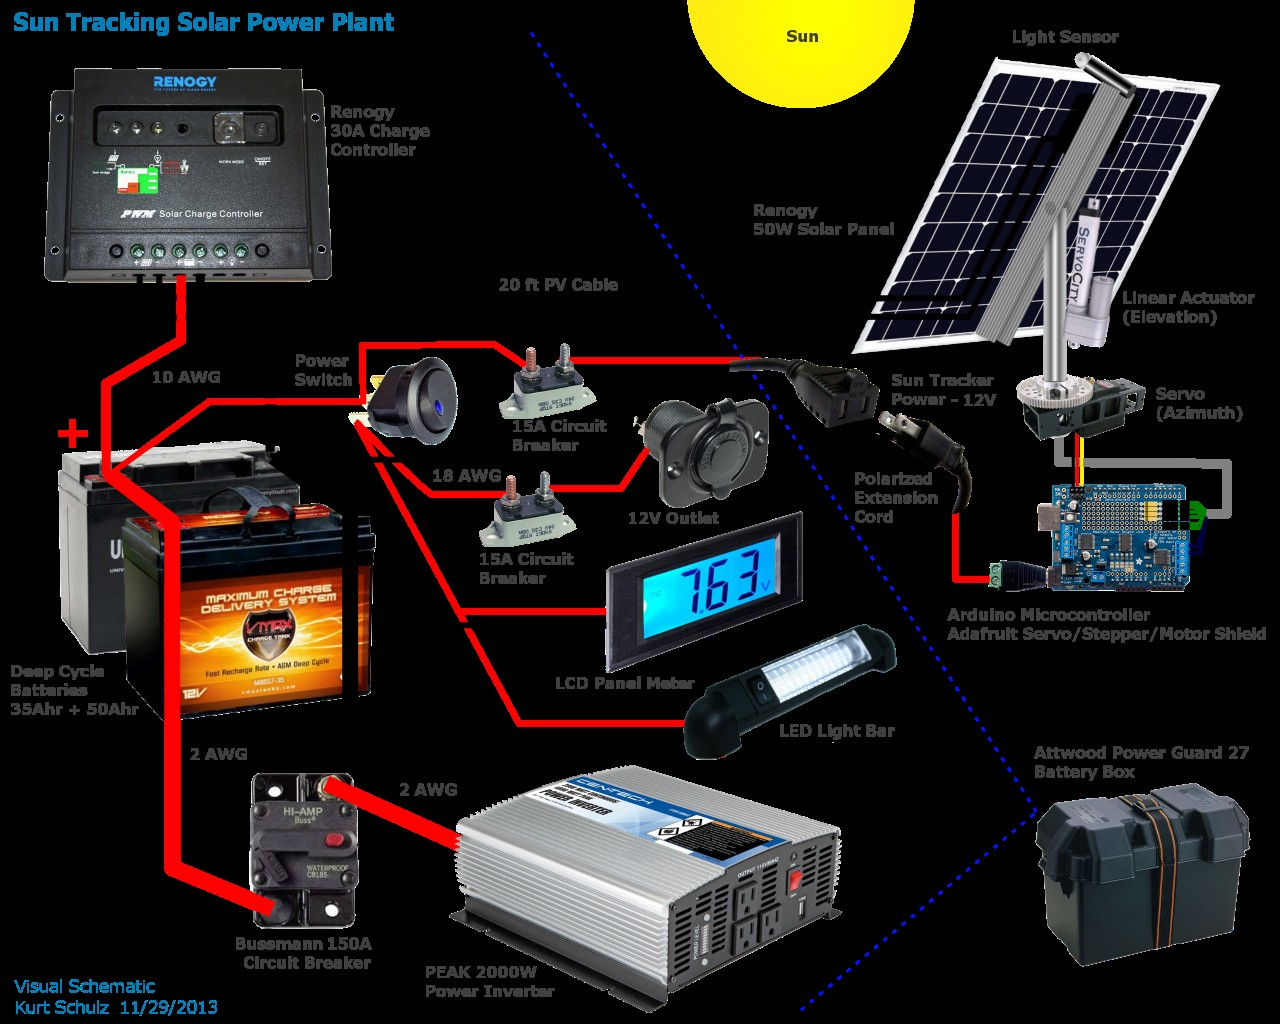 Diy Solar Panel Wiring Diagram Library Stepper Motor Driver Circuit Pv System Hybrid Visual Schematic Powerplant Power Pinterest From